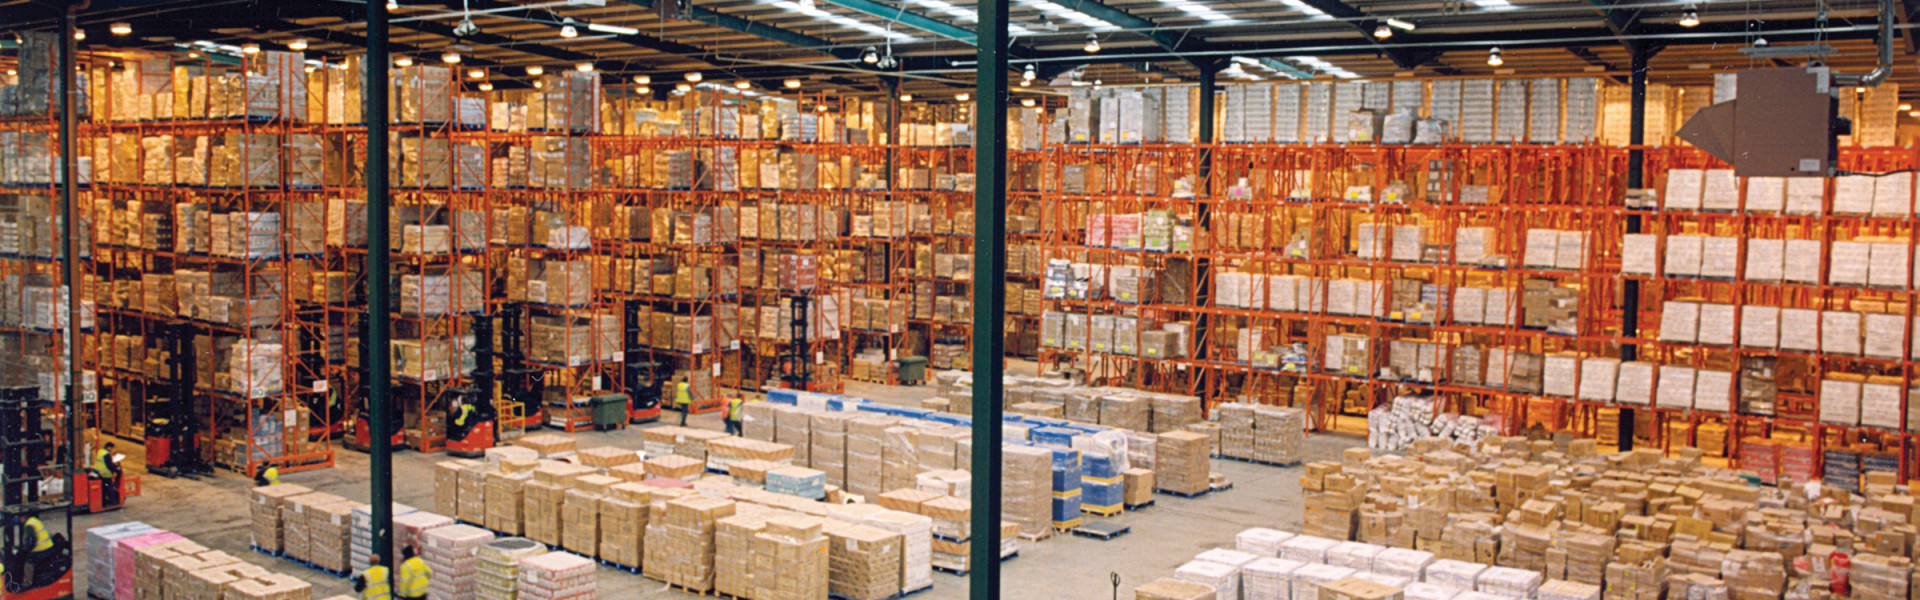 Safety Storage – Storage, warehousing and logistics solutions in one